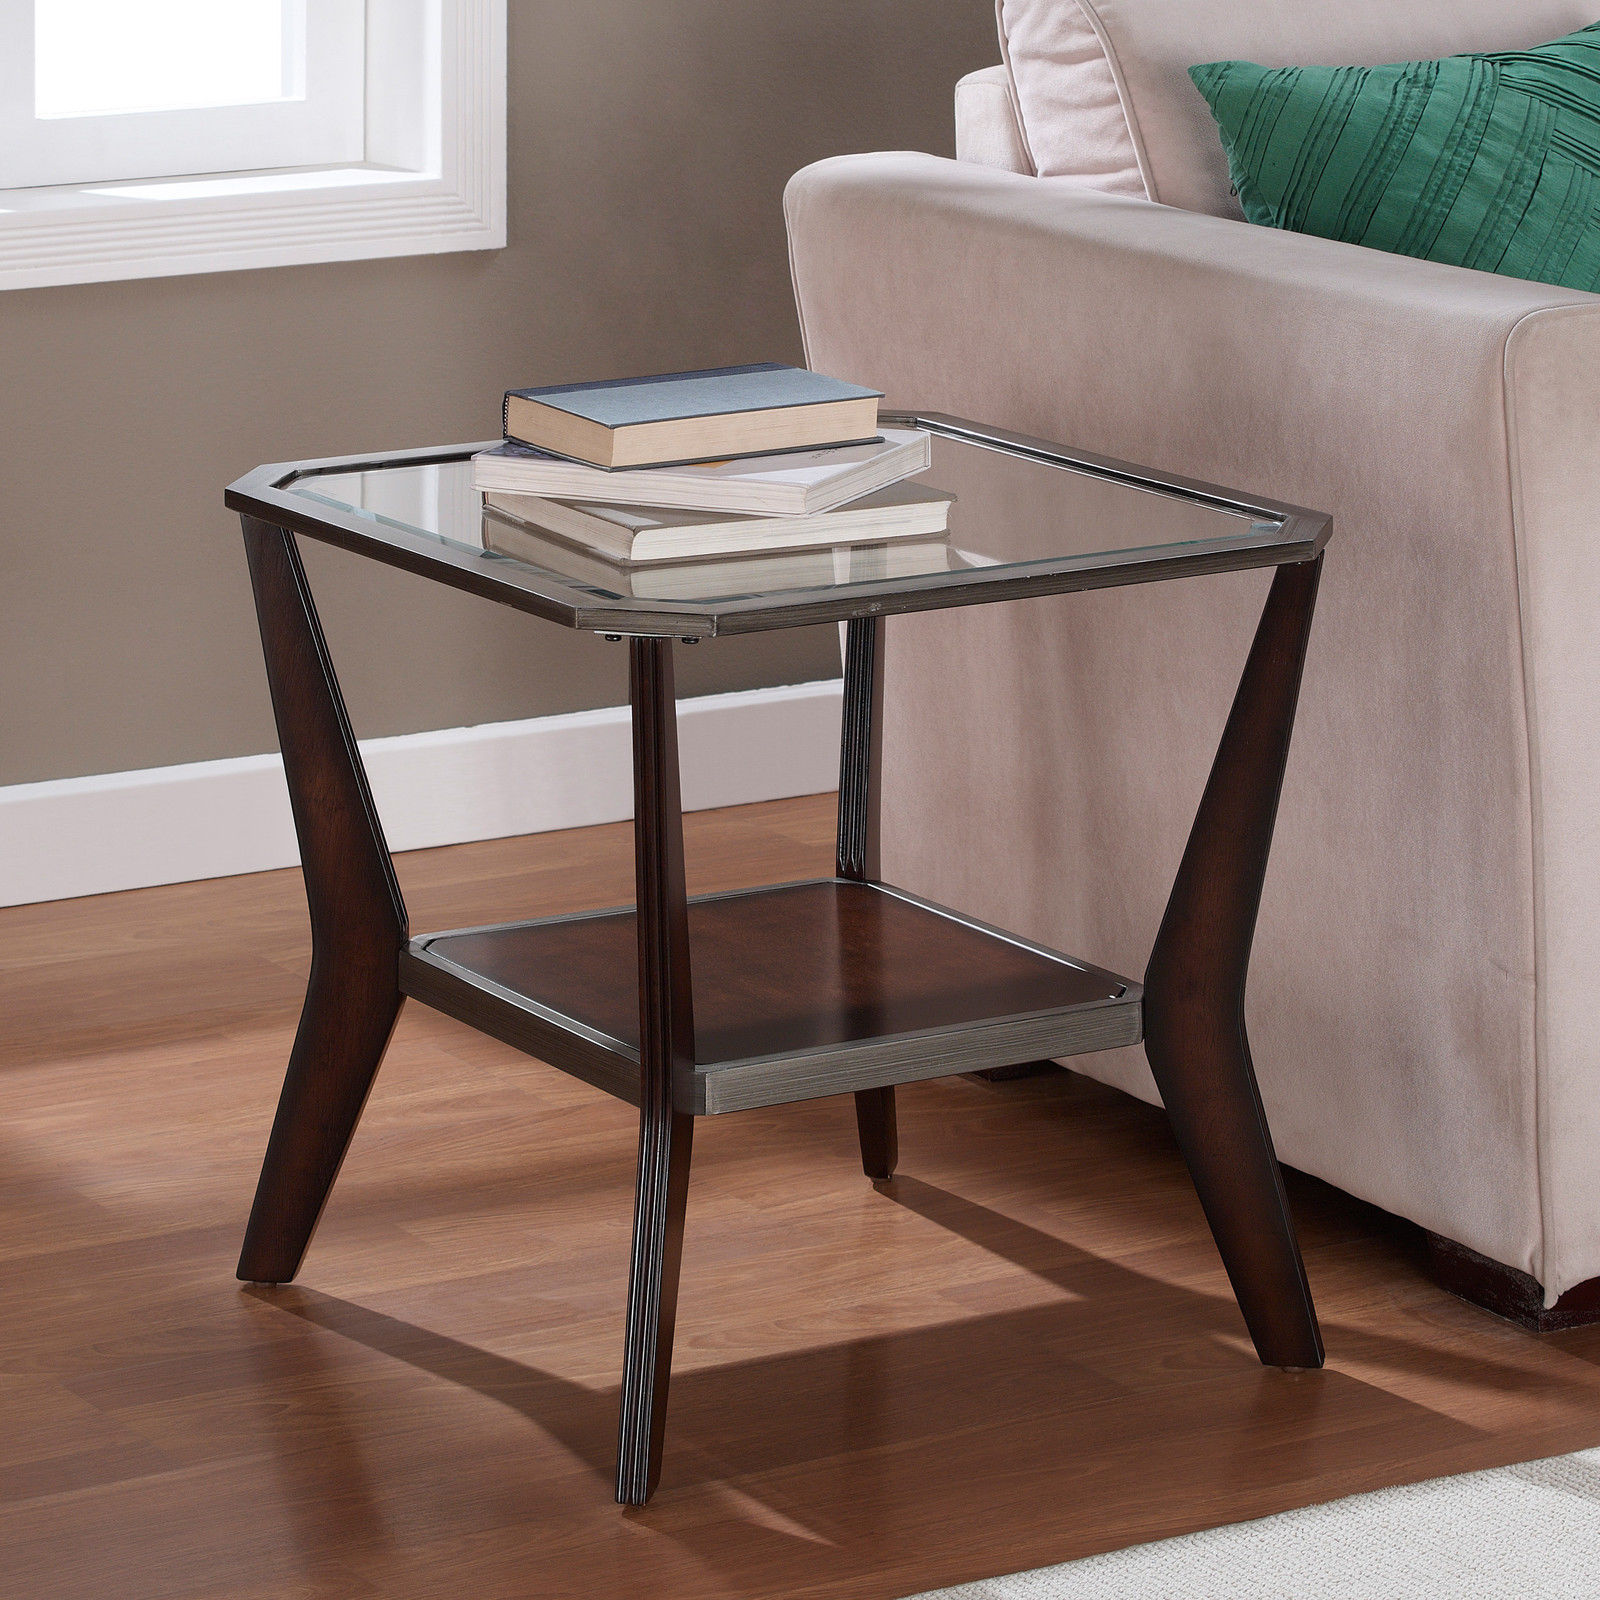 tables for the living room pictures of grey rooms contemporary accent 11 3 nitimifotografie nl cute side goodworksfurniture rh com chairs